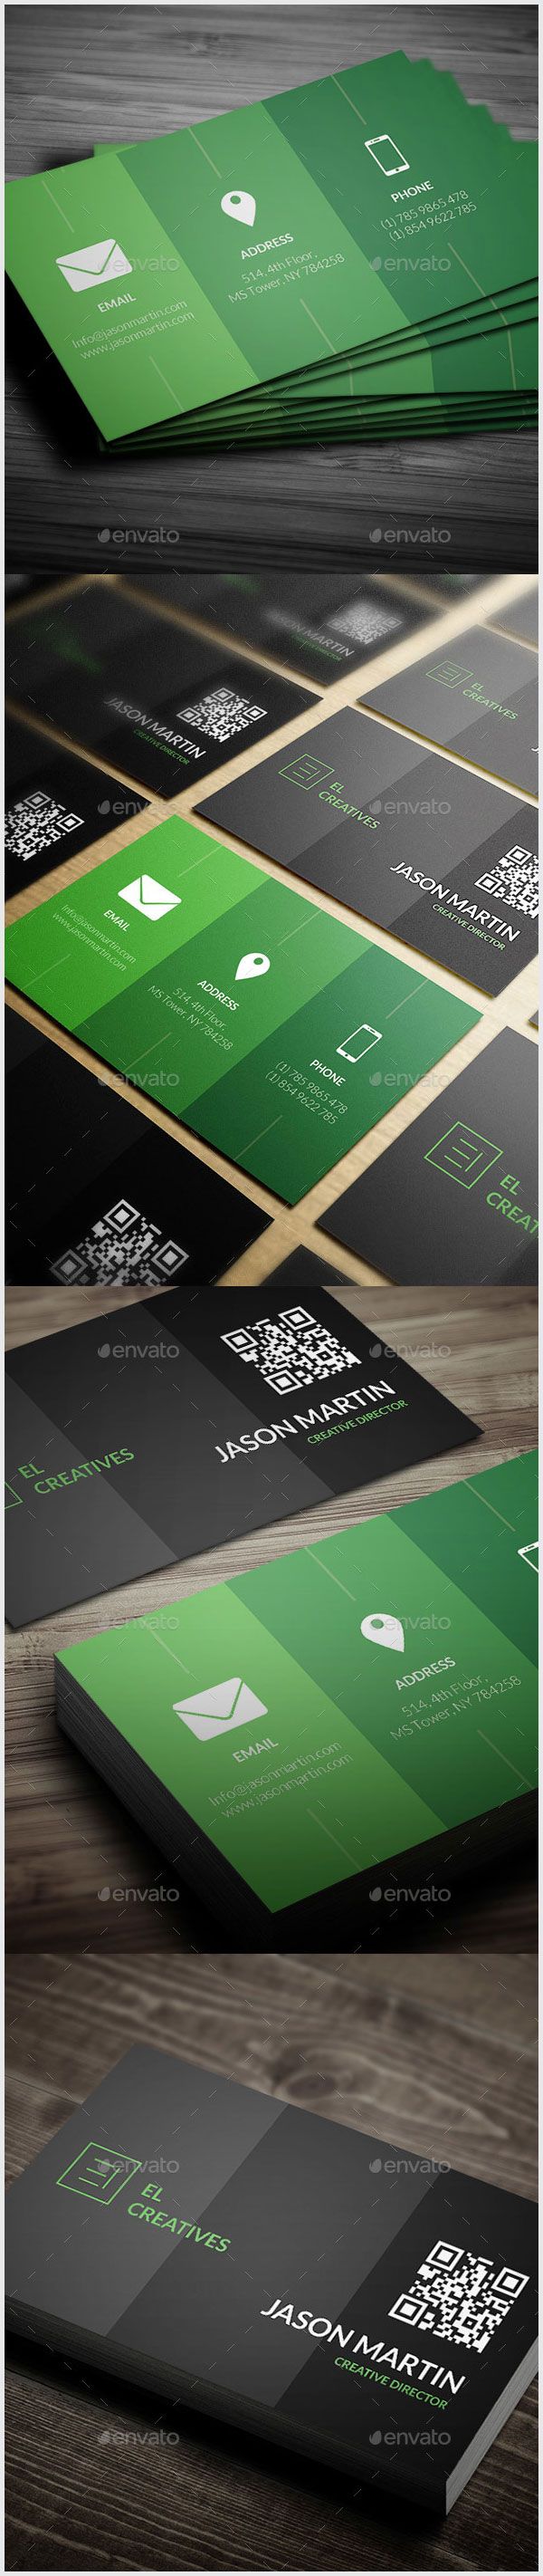 Minimal-Metro-Business-Card-For-Creative-Designers